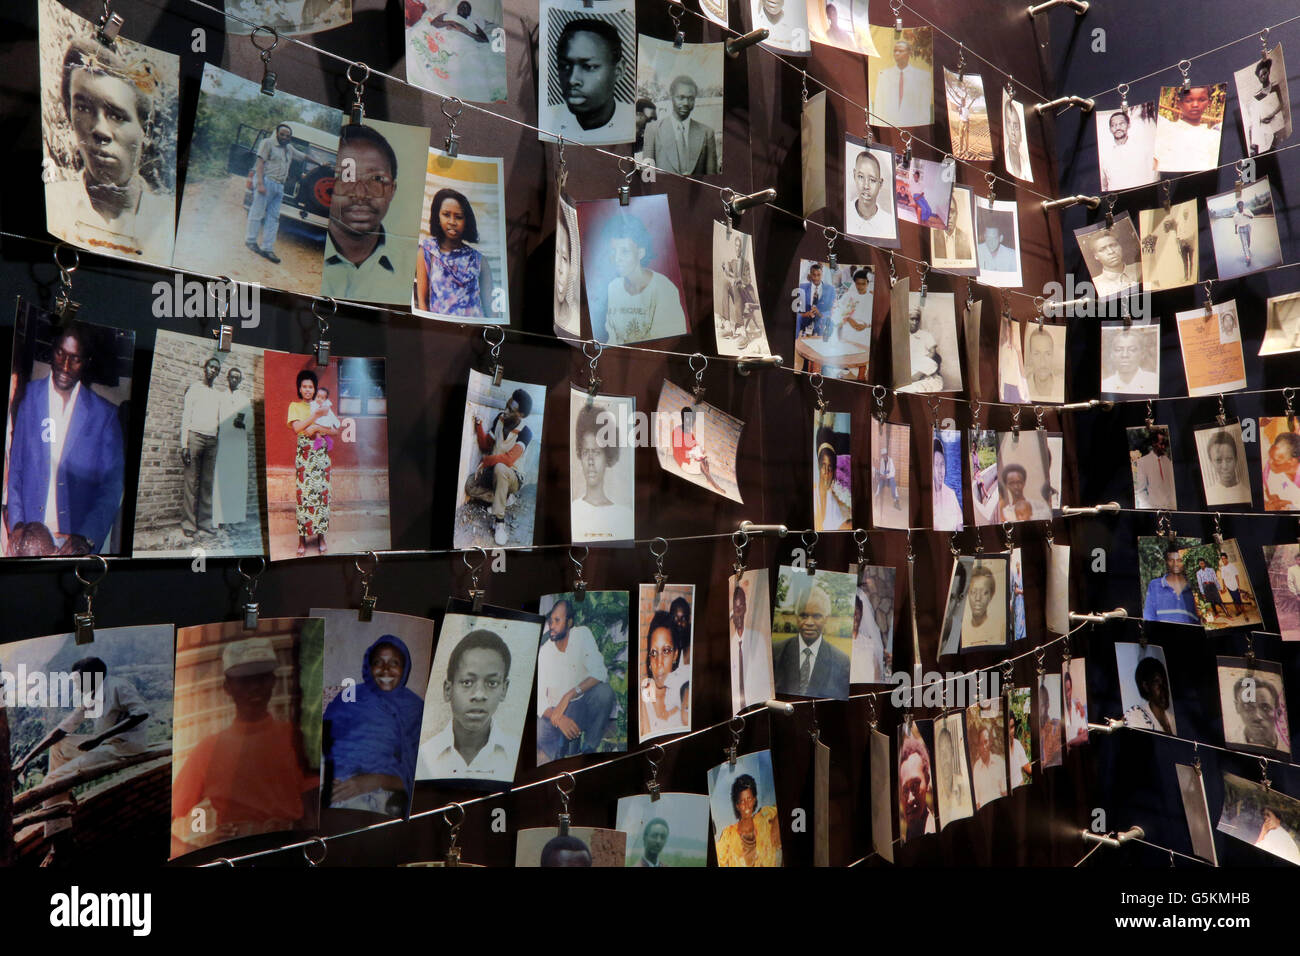 Photographs (donated to the museum by families) of people who were killed during the 1994 genocide. Kigali Memorial - Stock Image